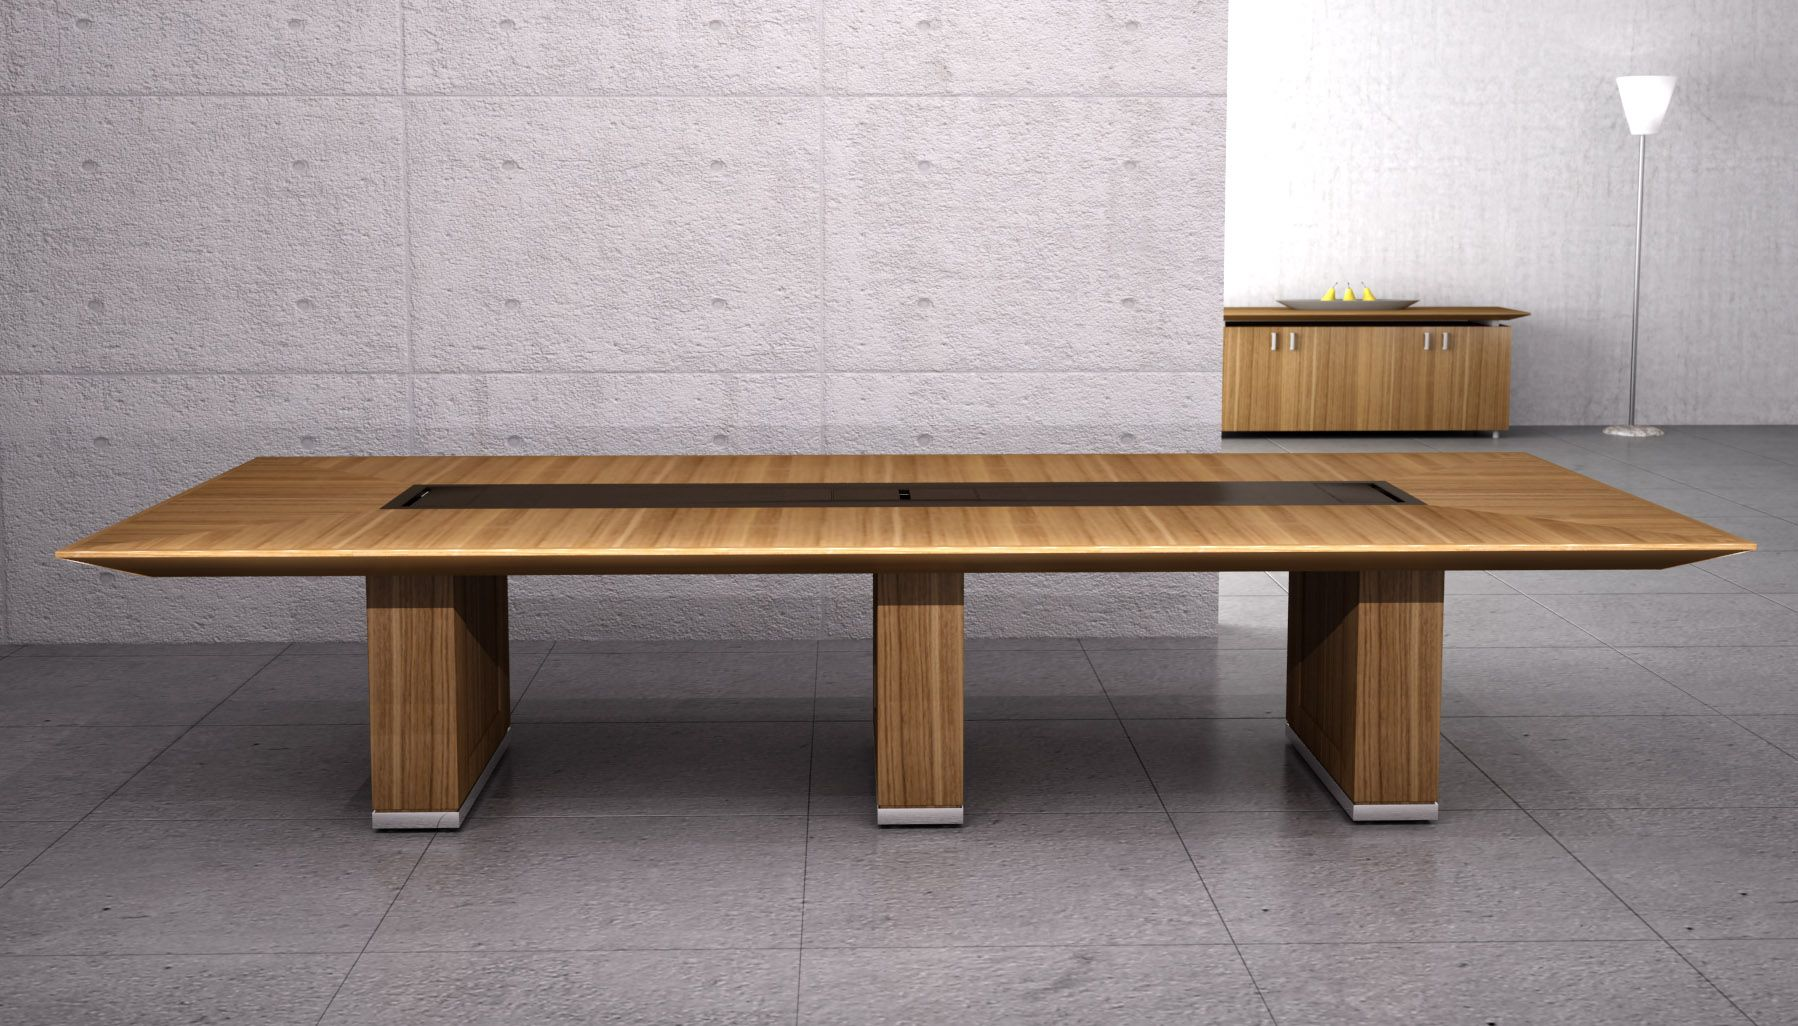 Modern wood table design - Various Awesome Conference Table Design Cool Bench Style Low Profile Modern Wooden Conference Table Design